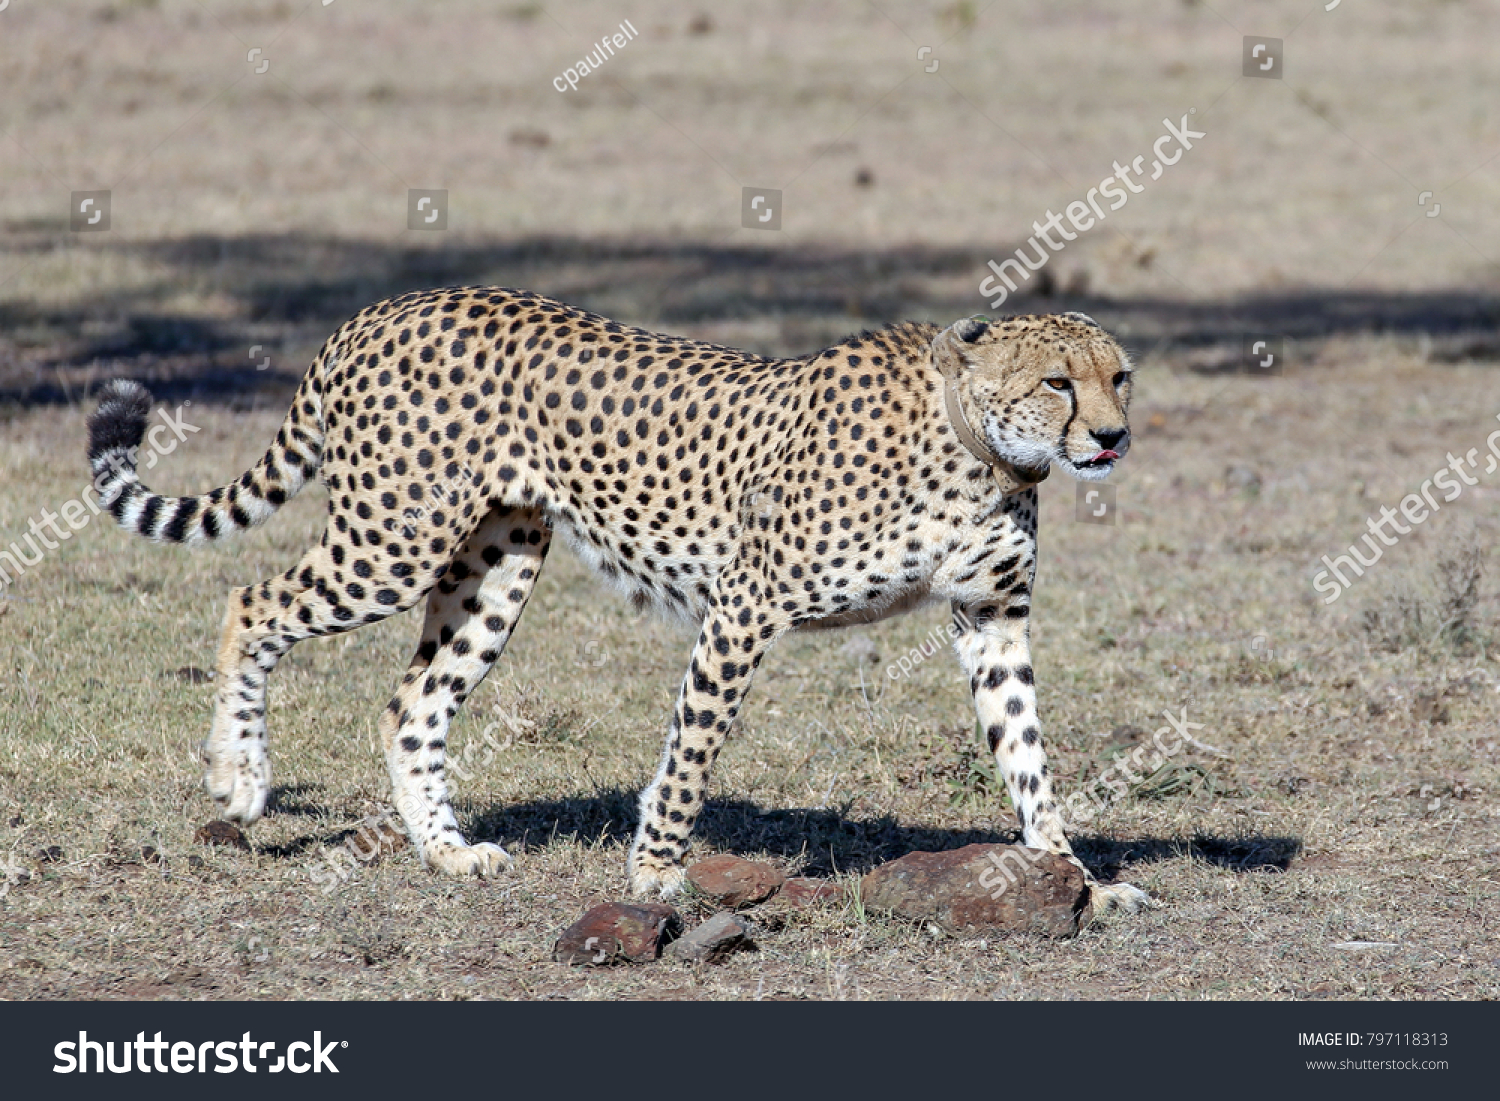 stock-photo-a-large-beautiful-male-cheet